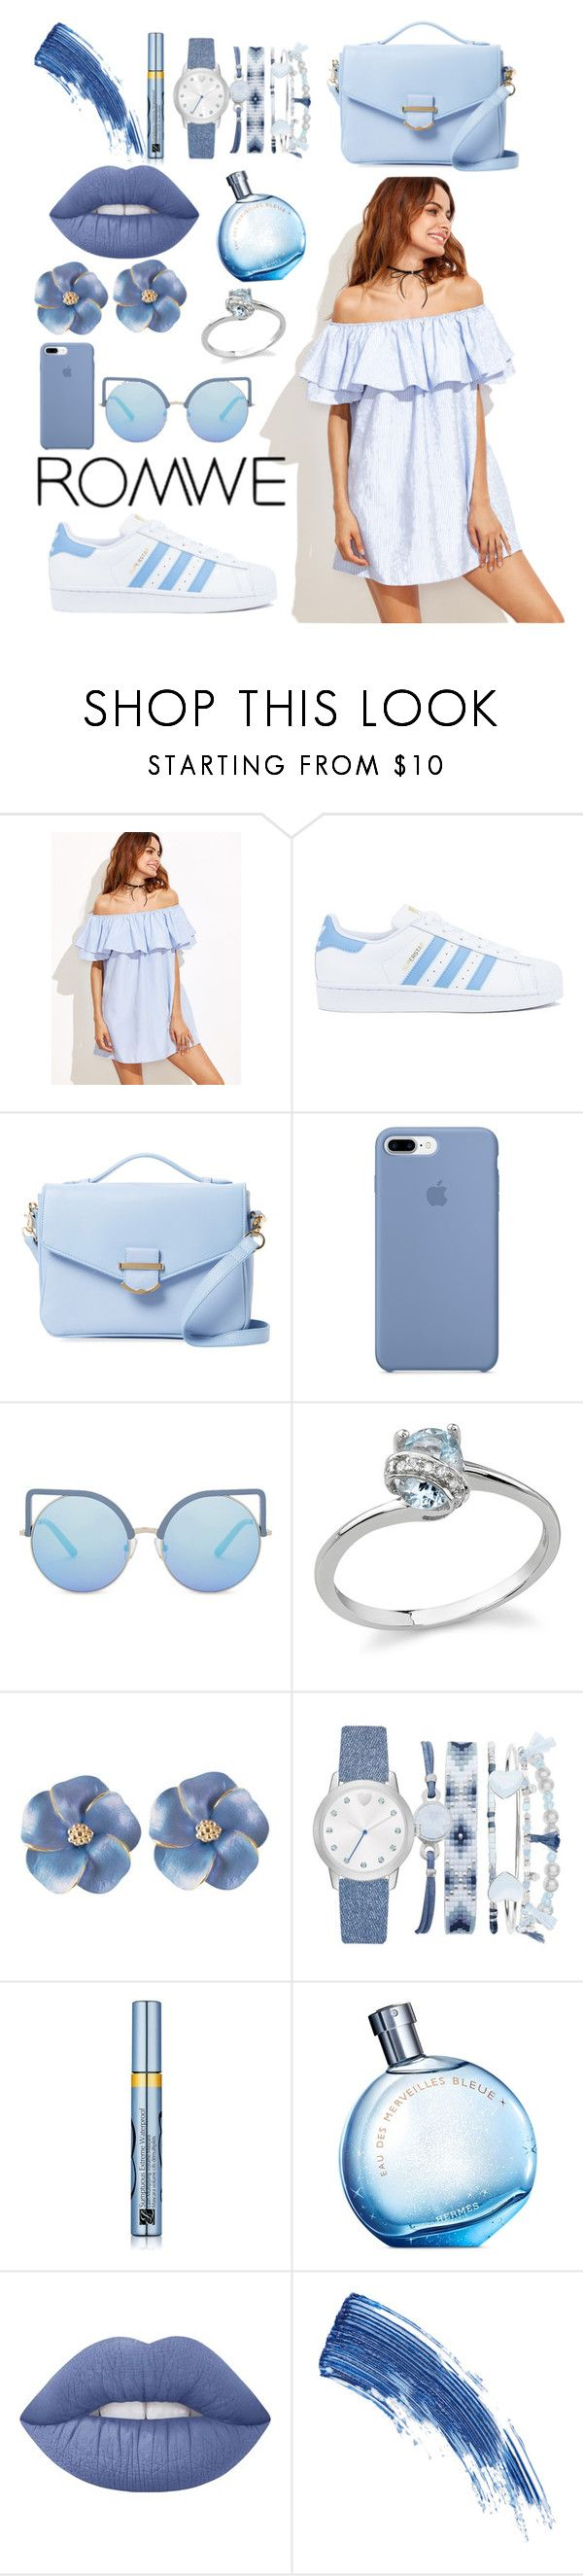 """Untitled #113"" by alexandrrraaa on Polyvore featuring adidas, Cynthia Rowley, Matthew Williamson, A.X.N.Y., Estée Lauder, Hermès, Lime Crime and Eyeko"